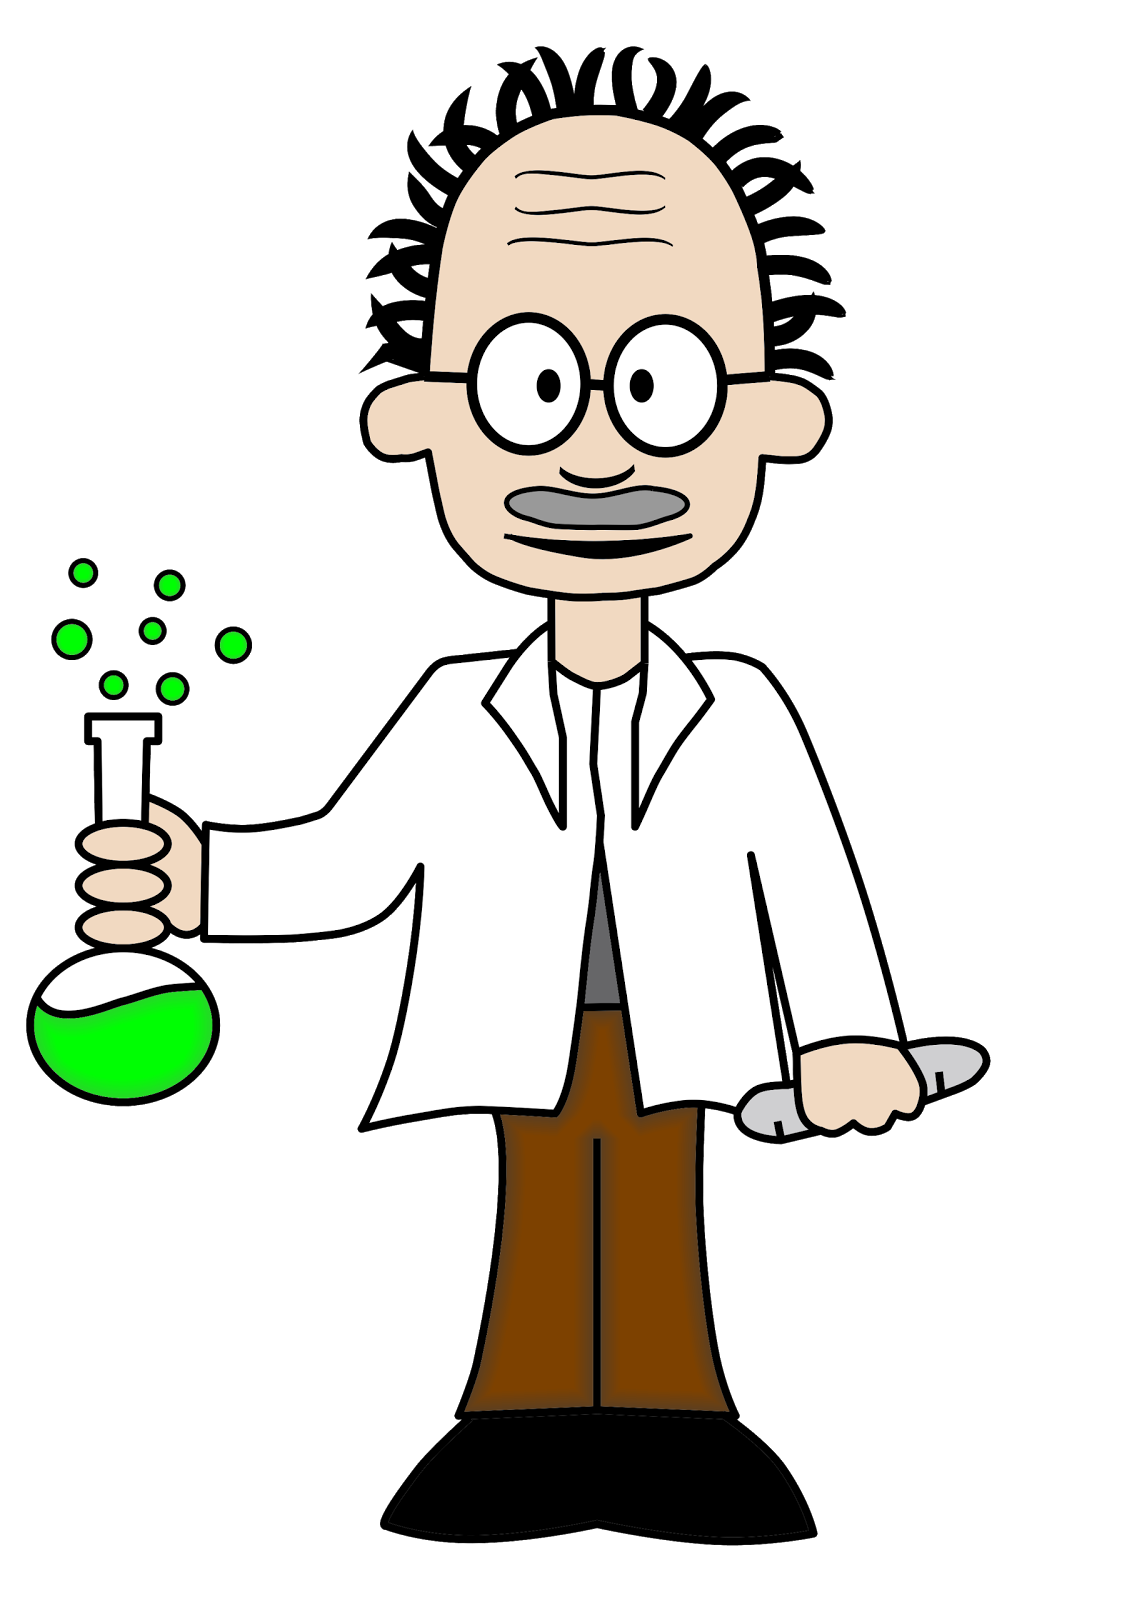 How to draw scientist cartoon